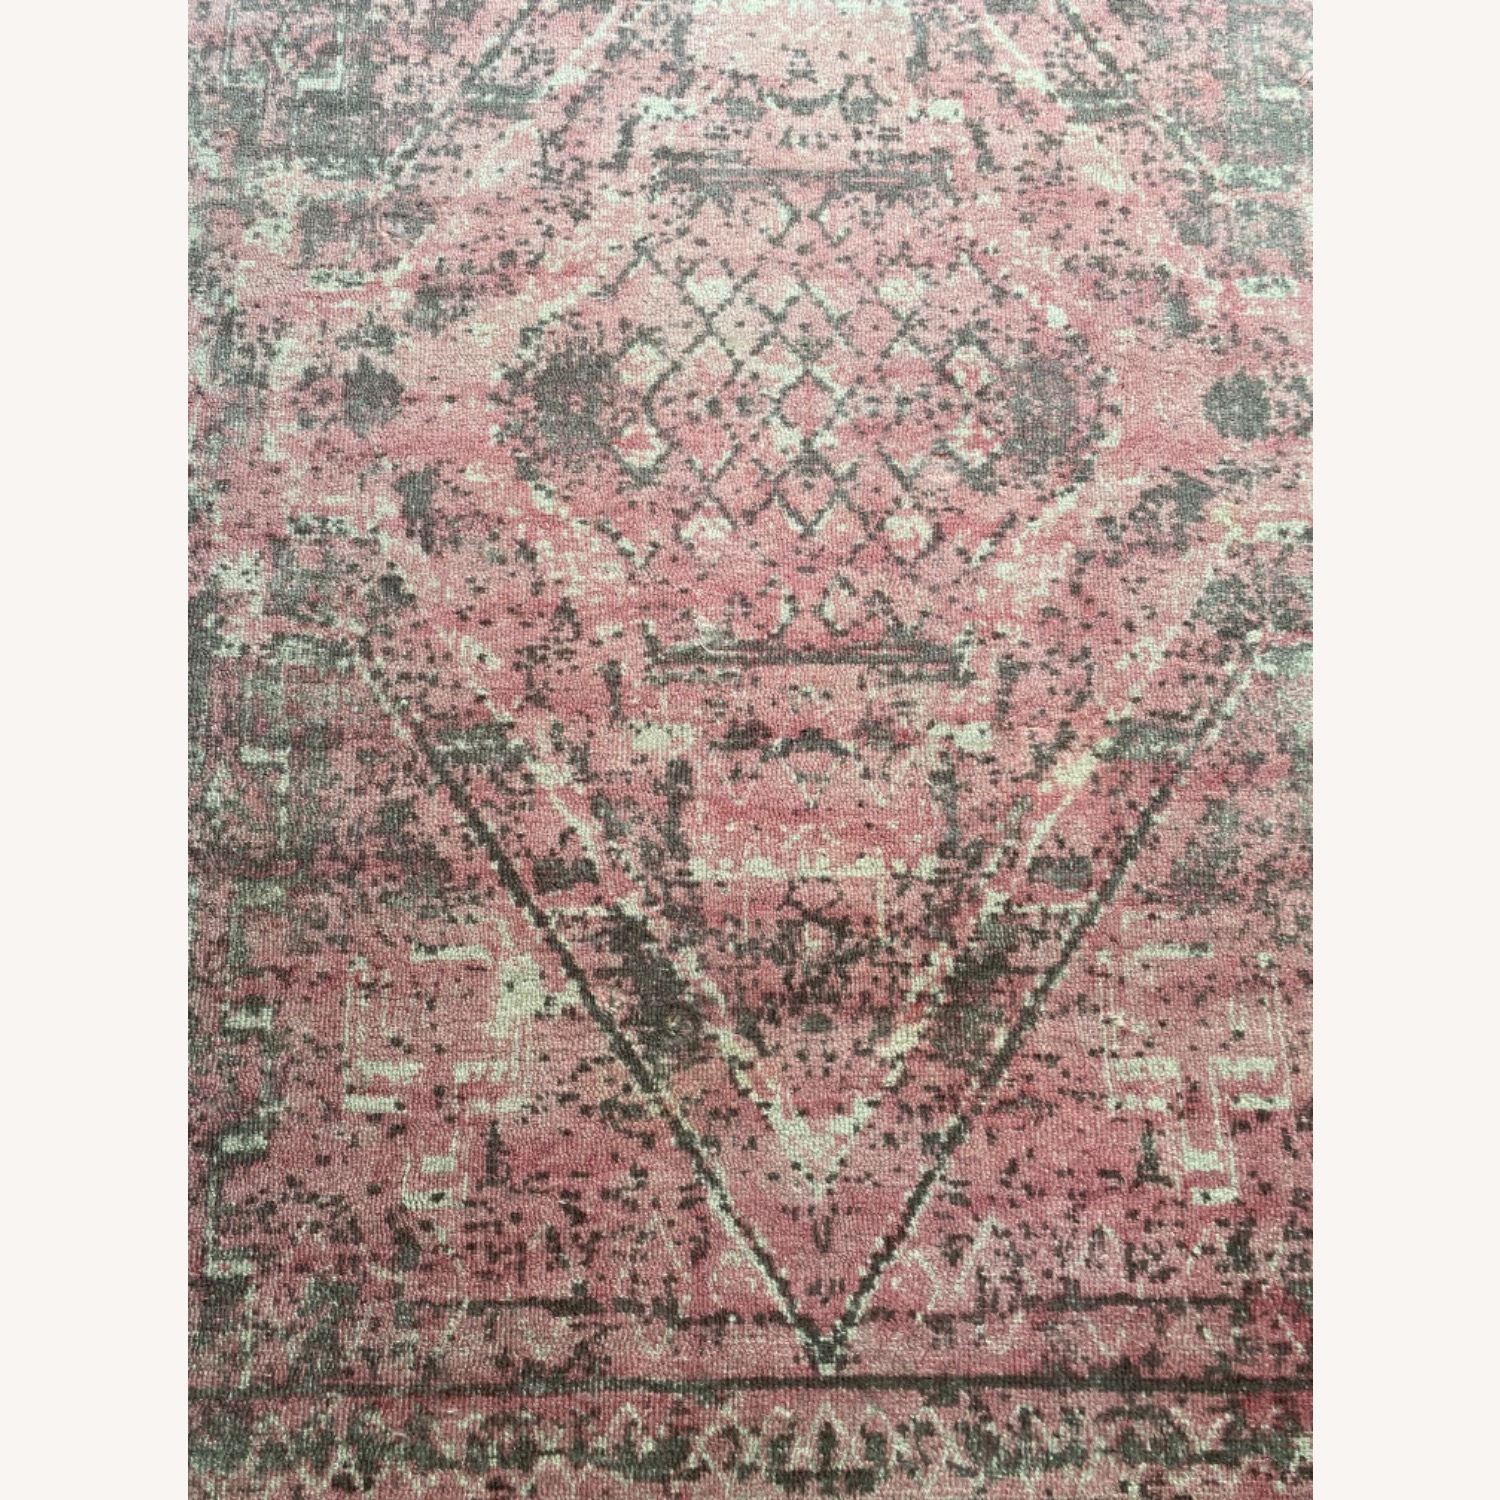 Bungalow 5 Pink and Gray Area Rug - image-2